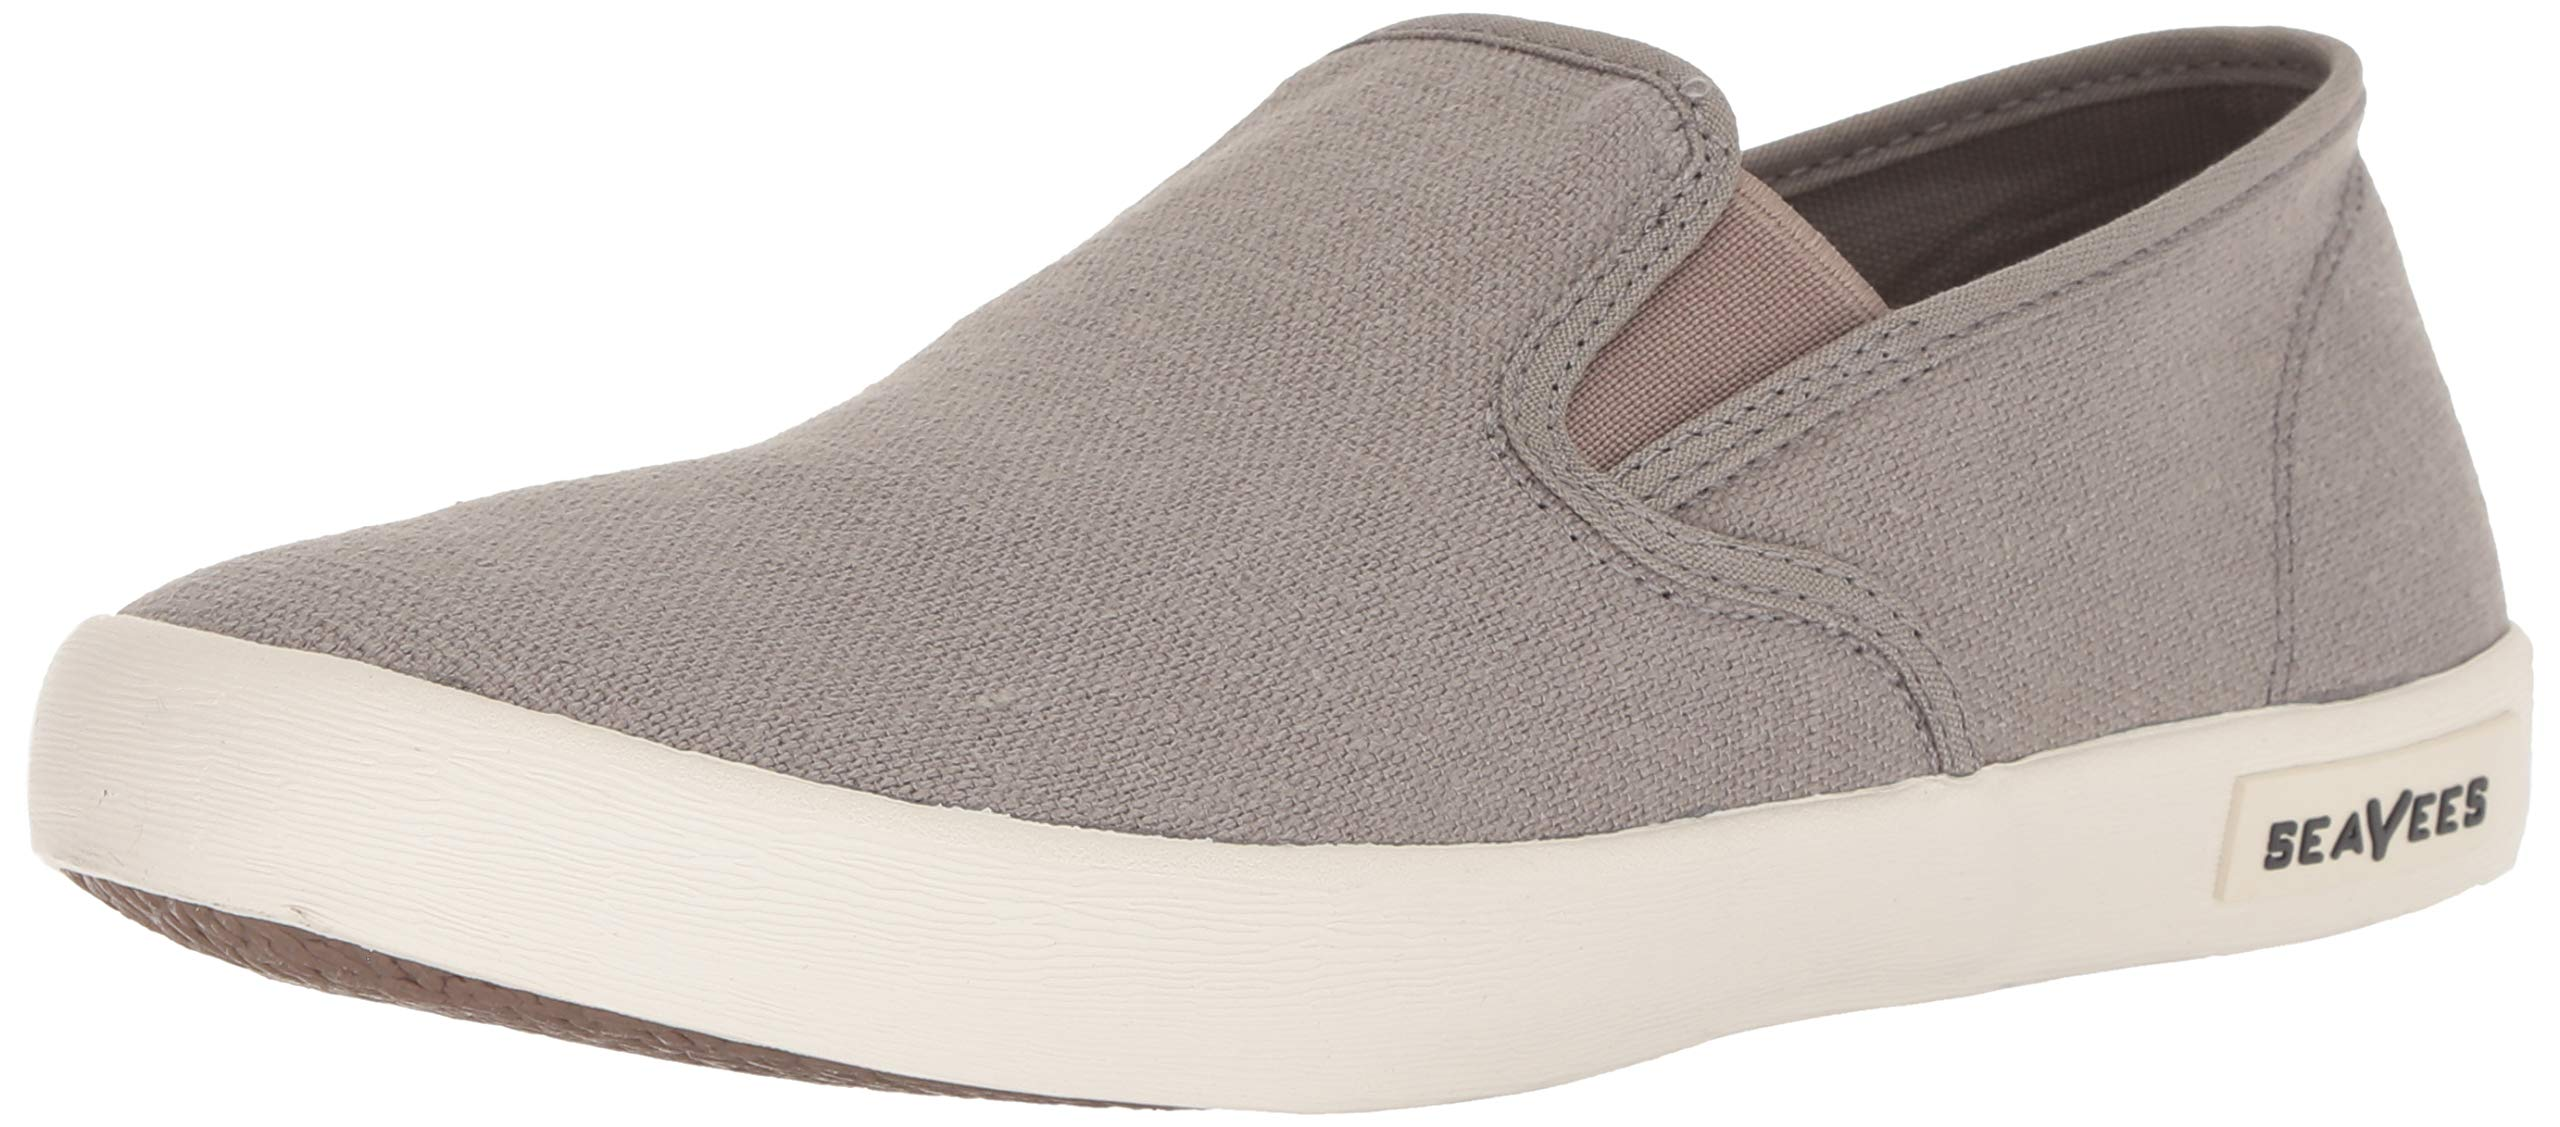 SeaVees Men's Baja Slip On Standard Casual Sneaker,Tin Grey, 12